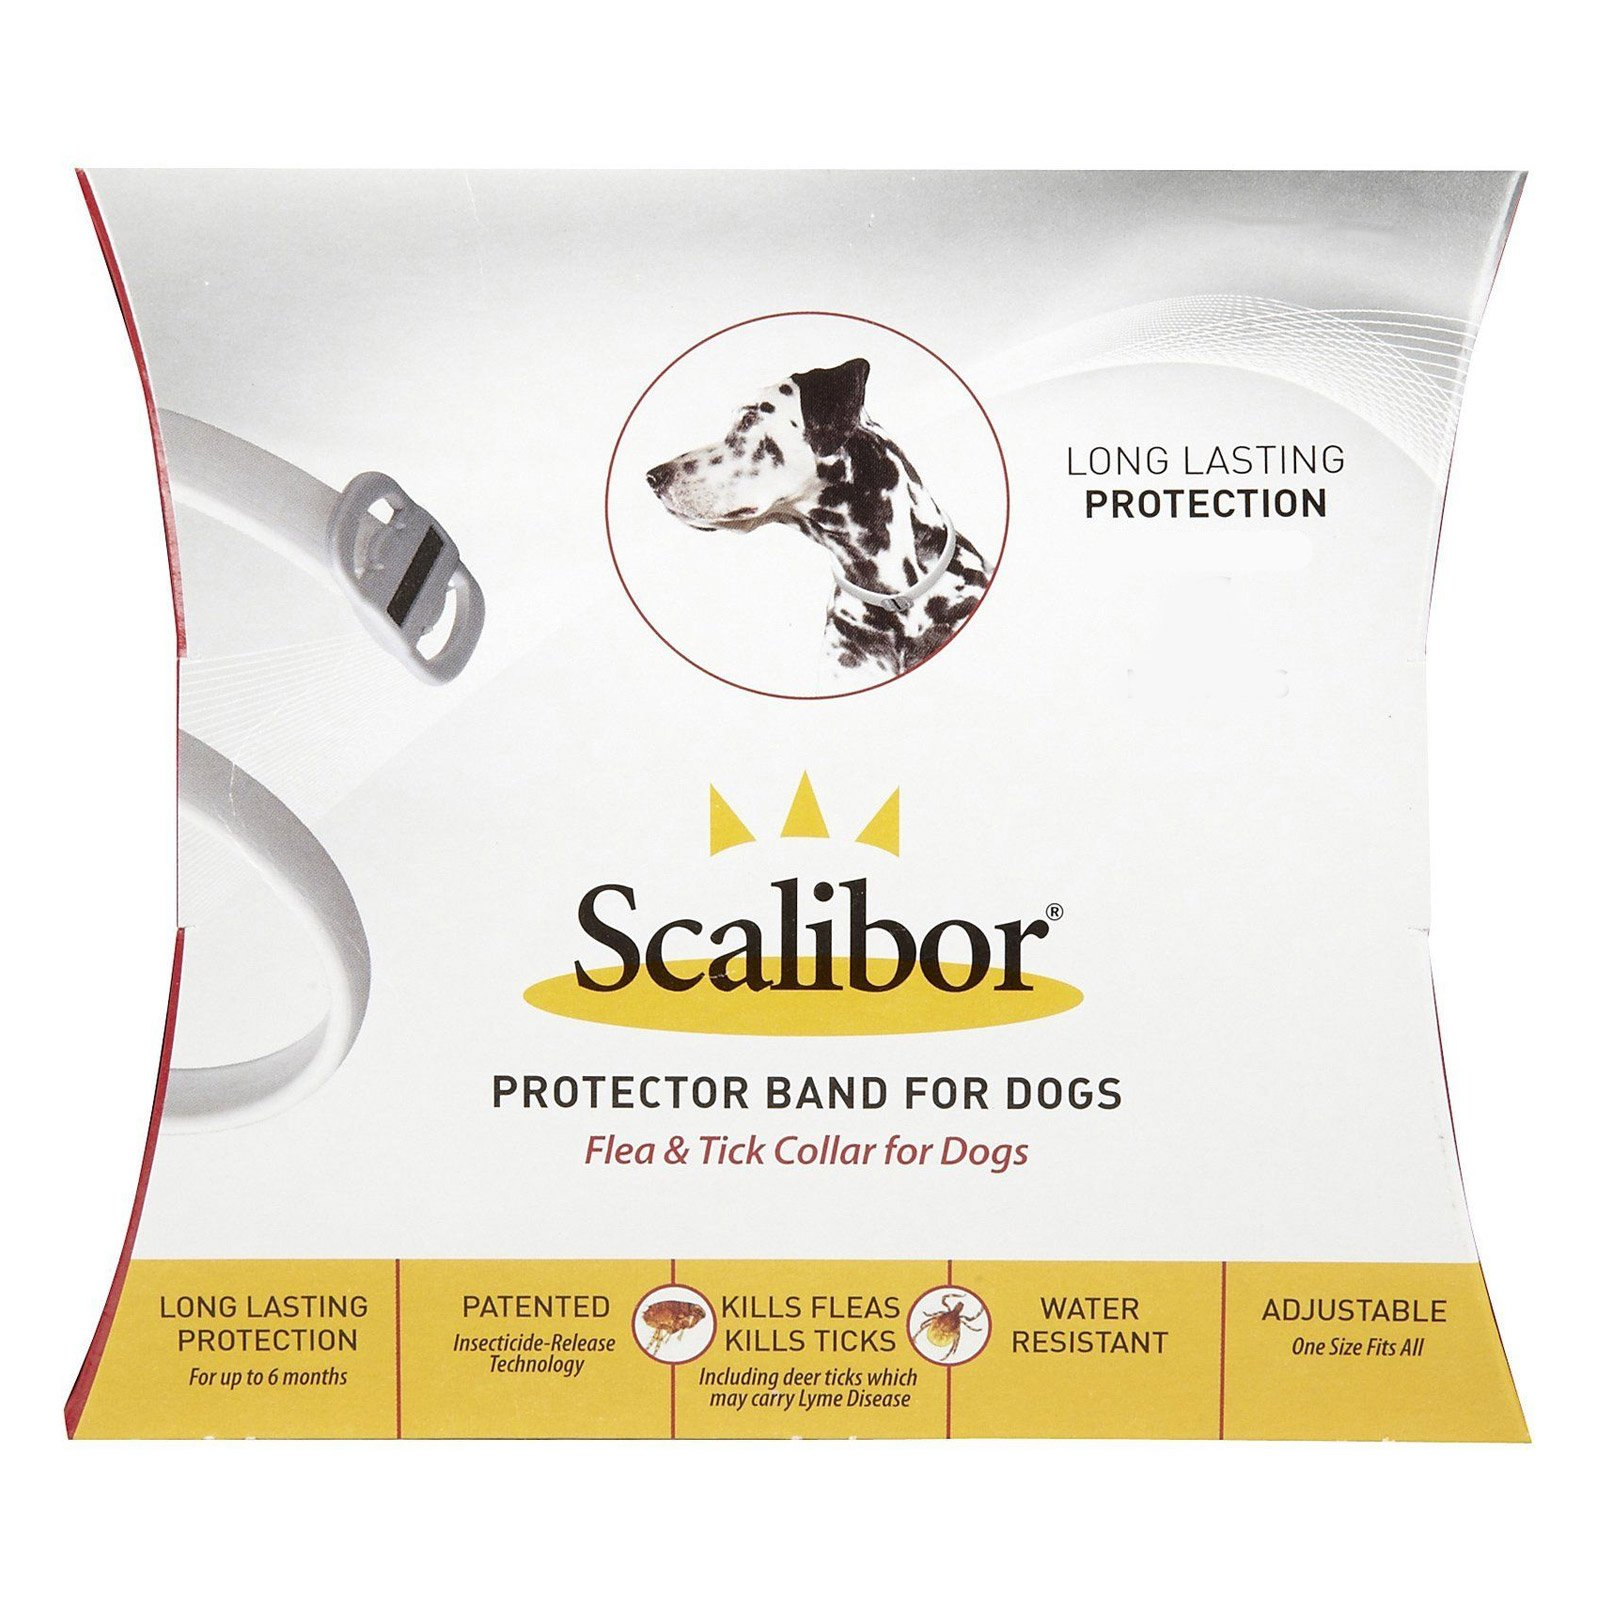 130047093408436385Scalibor-Tick-collars